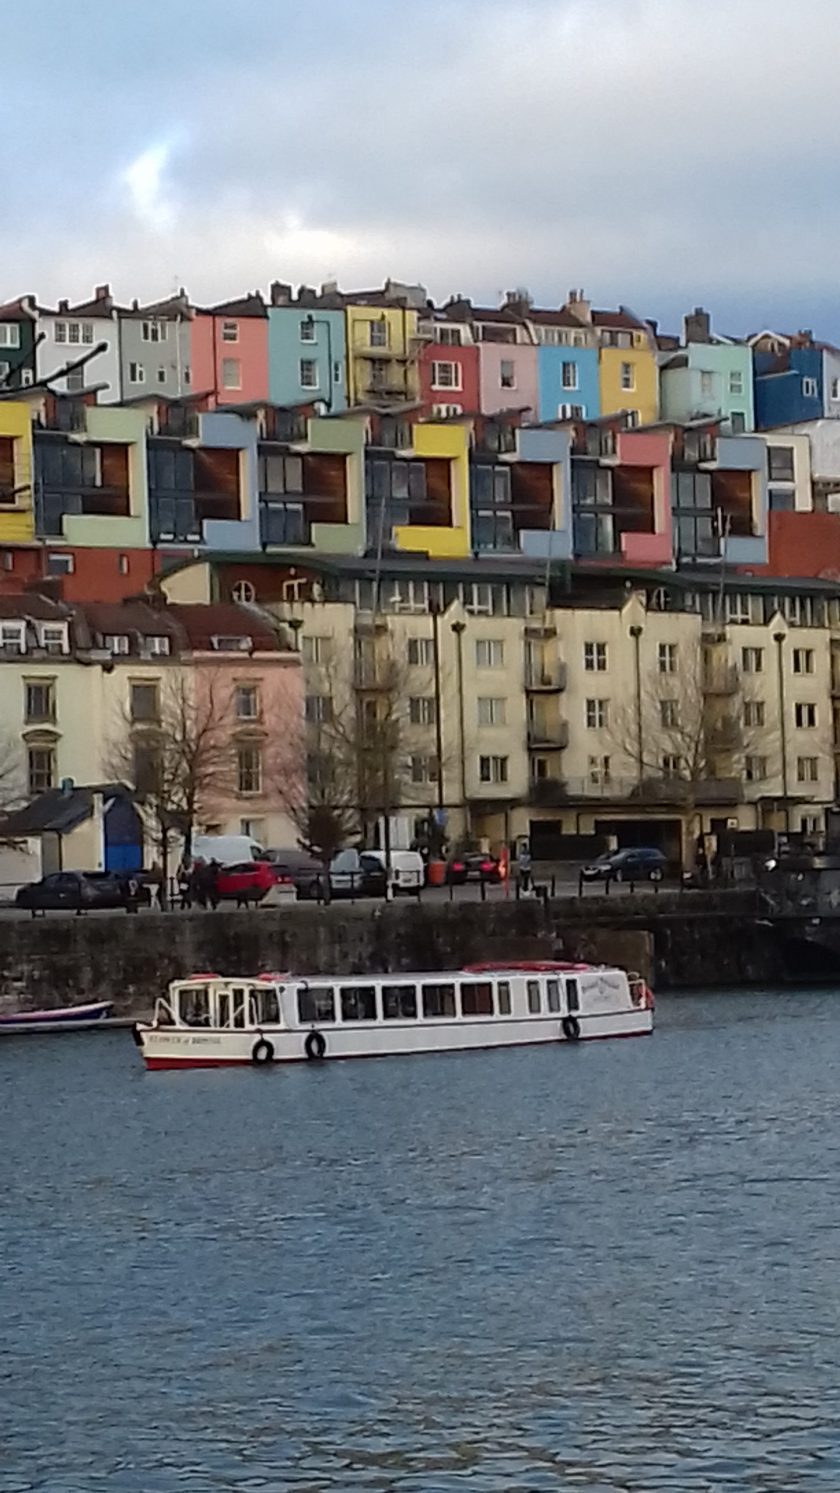 A boat passing the colourful houses on Bristol harbourside